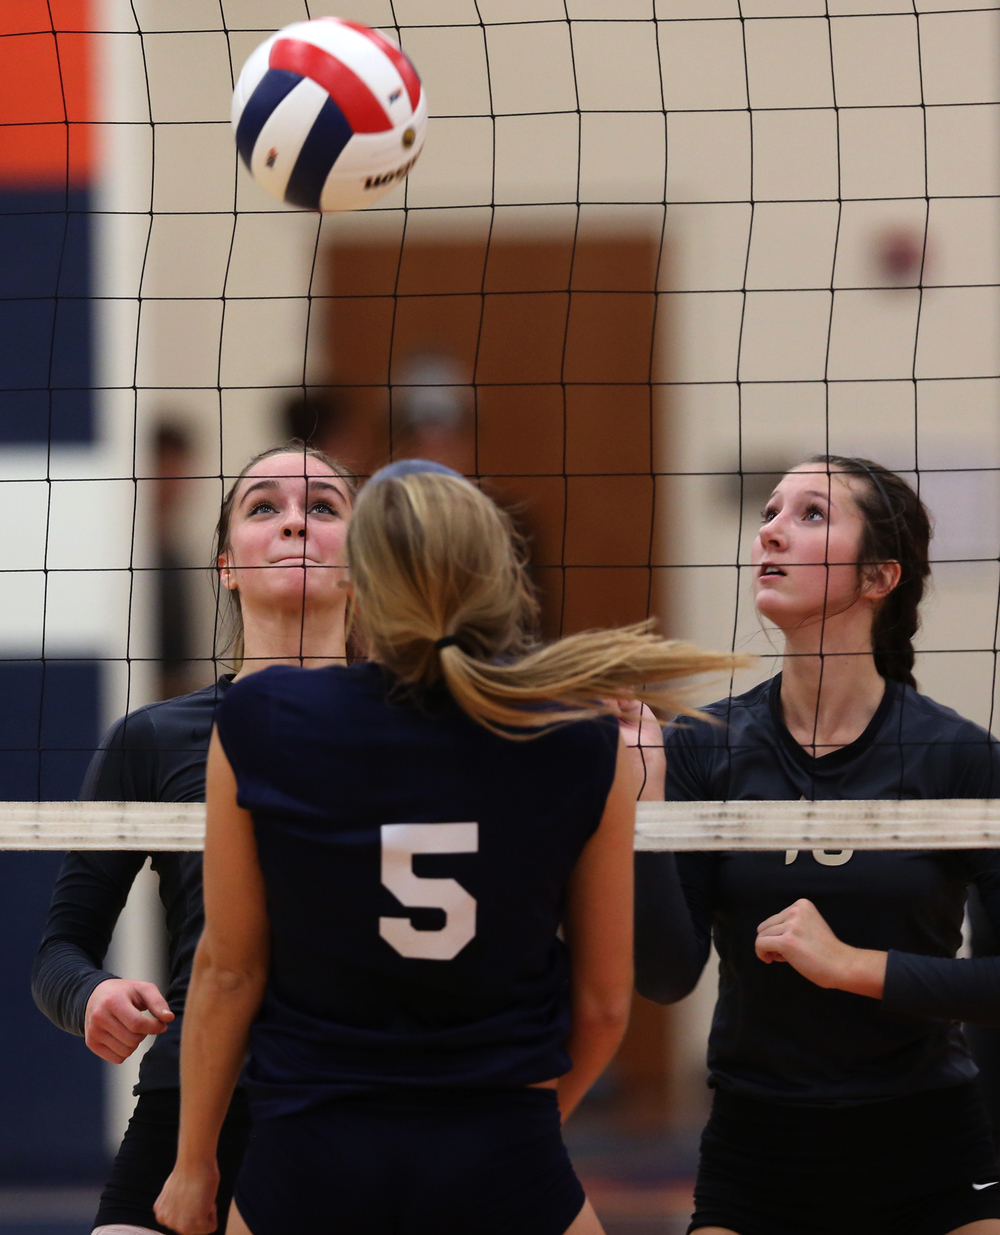 Cyclones players Emma Hopkins at left and Megan Lewis watch the ball get jammed up into the net on the Raiders side in the first game. David Spencer/The State Journal-Register